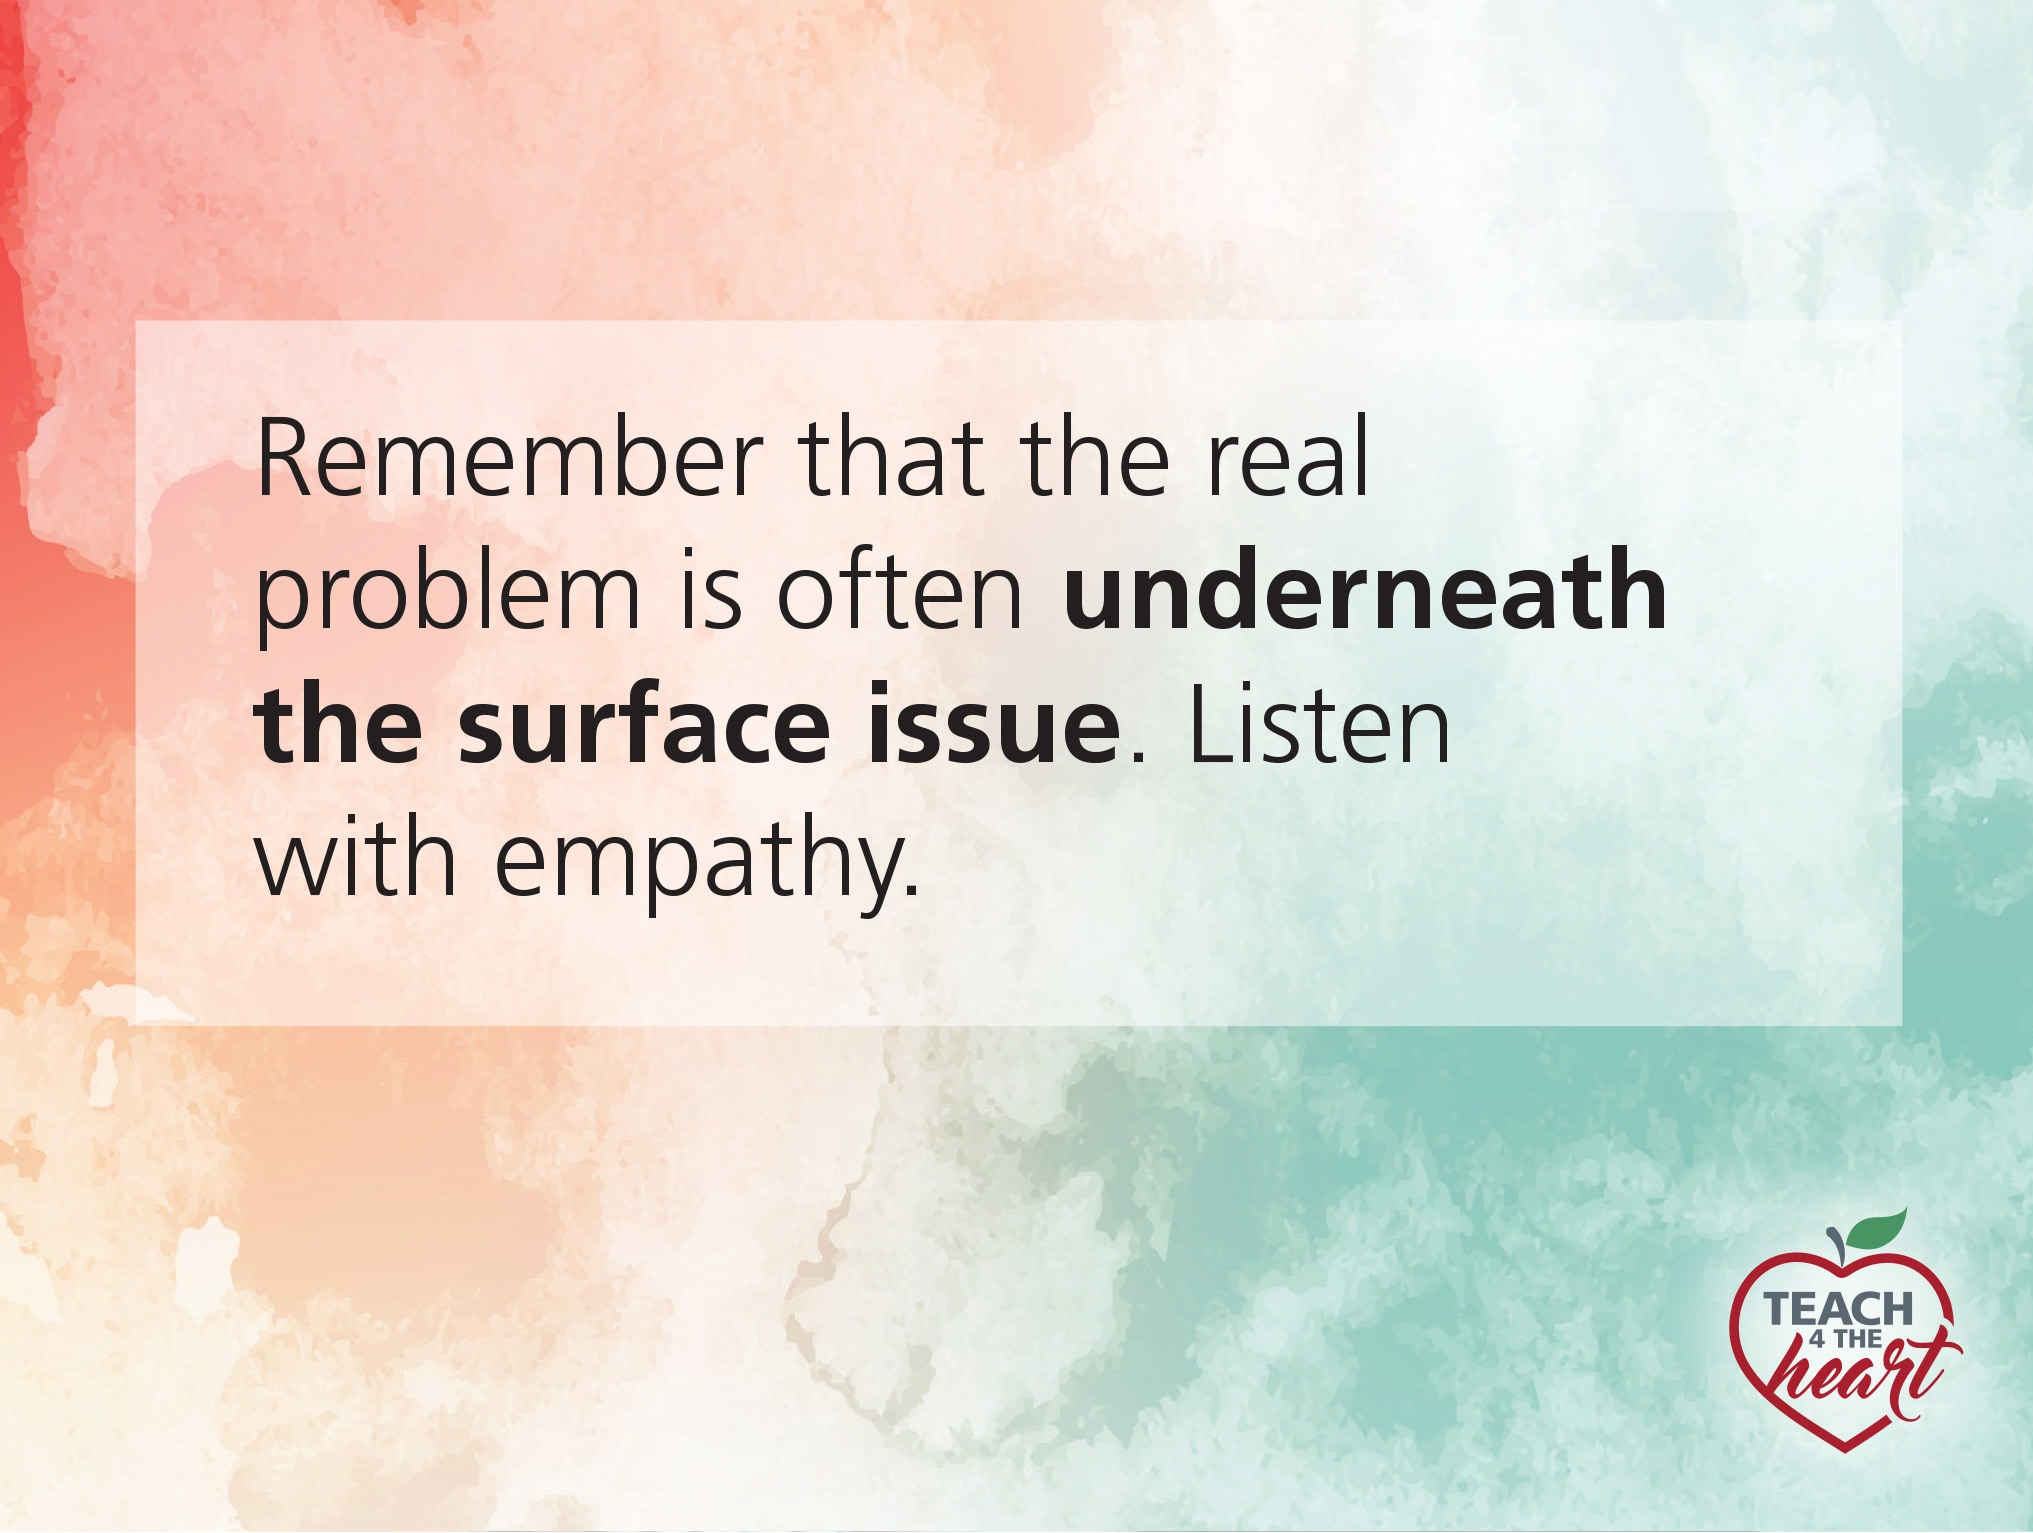 Remember the real problem is often underneath the surface issue. Listen with empathy.